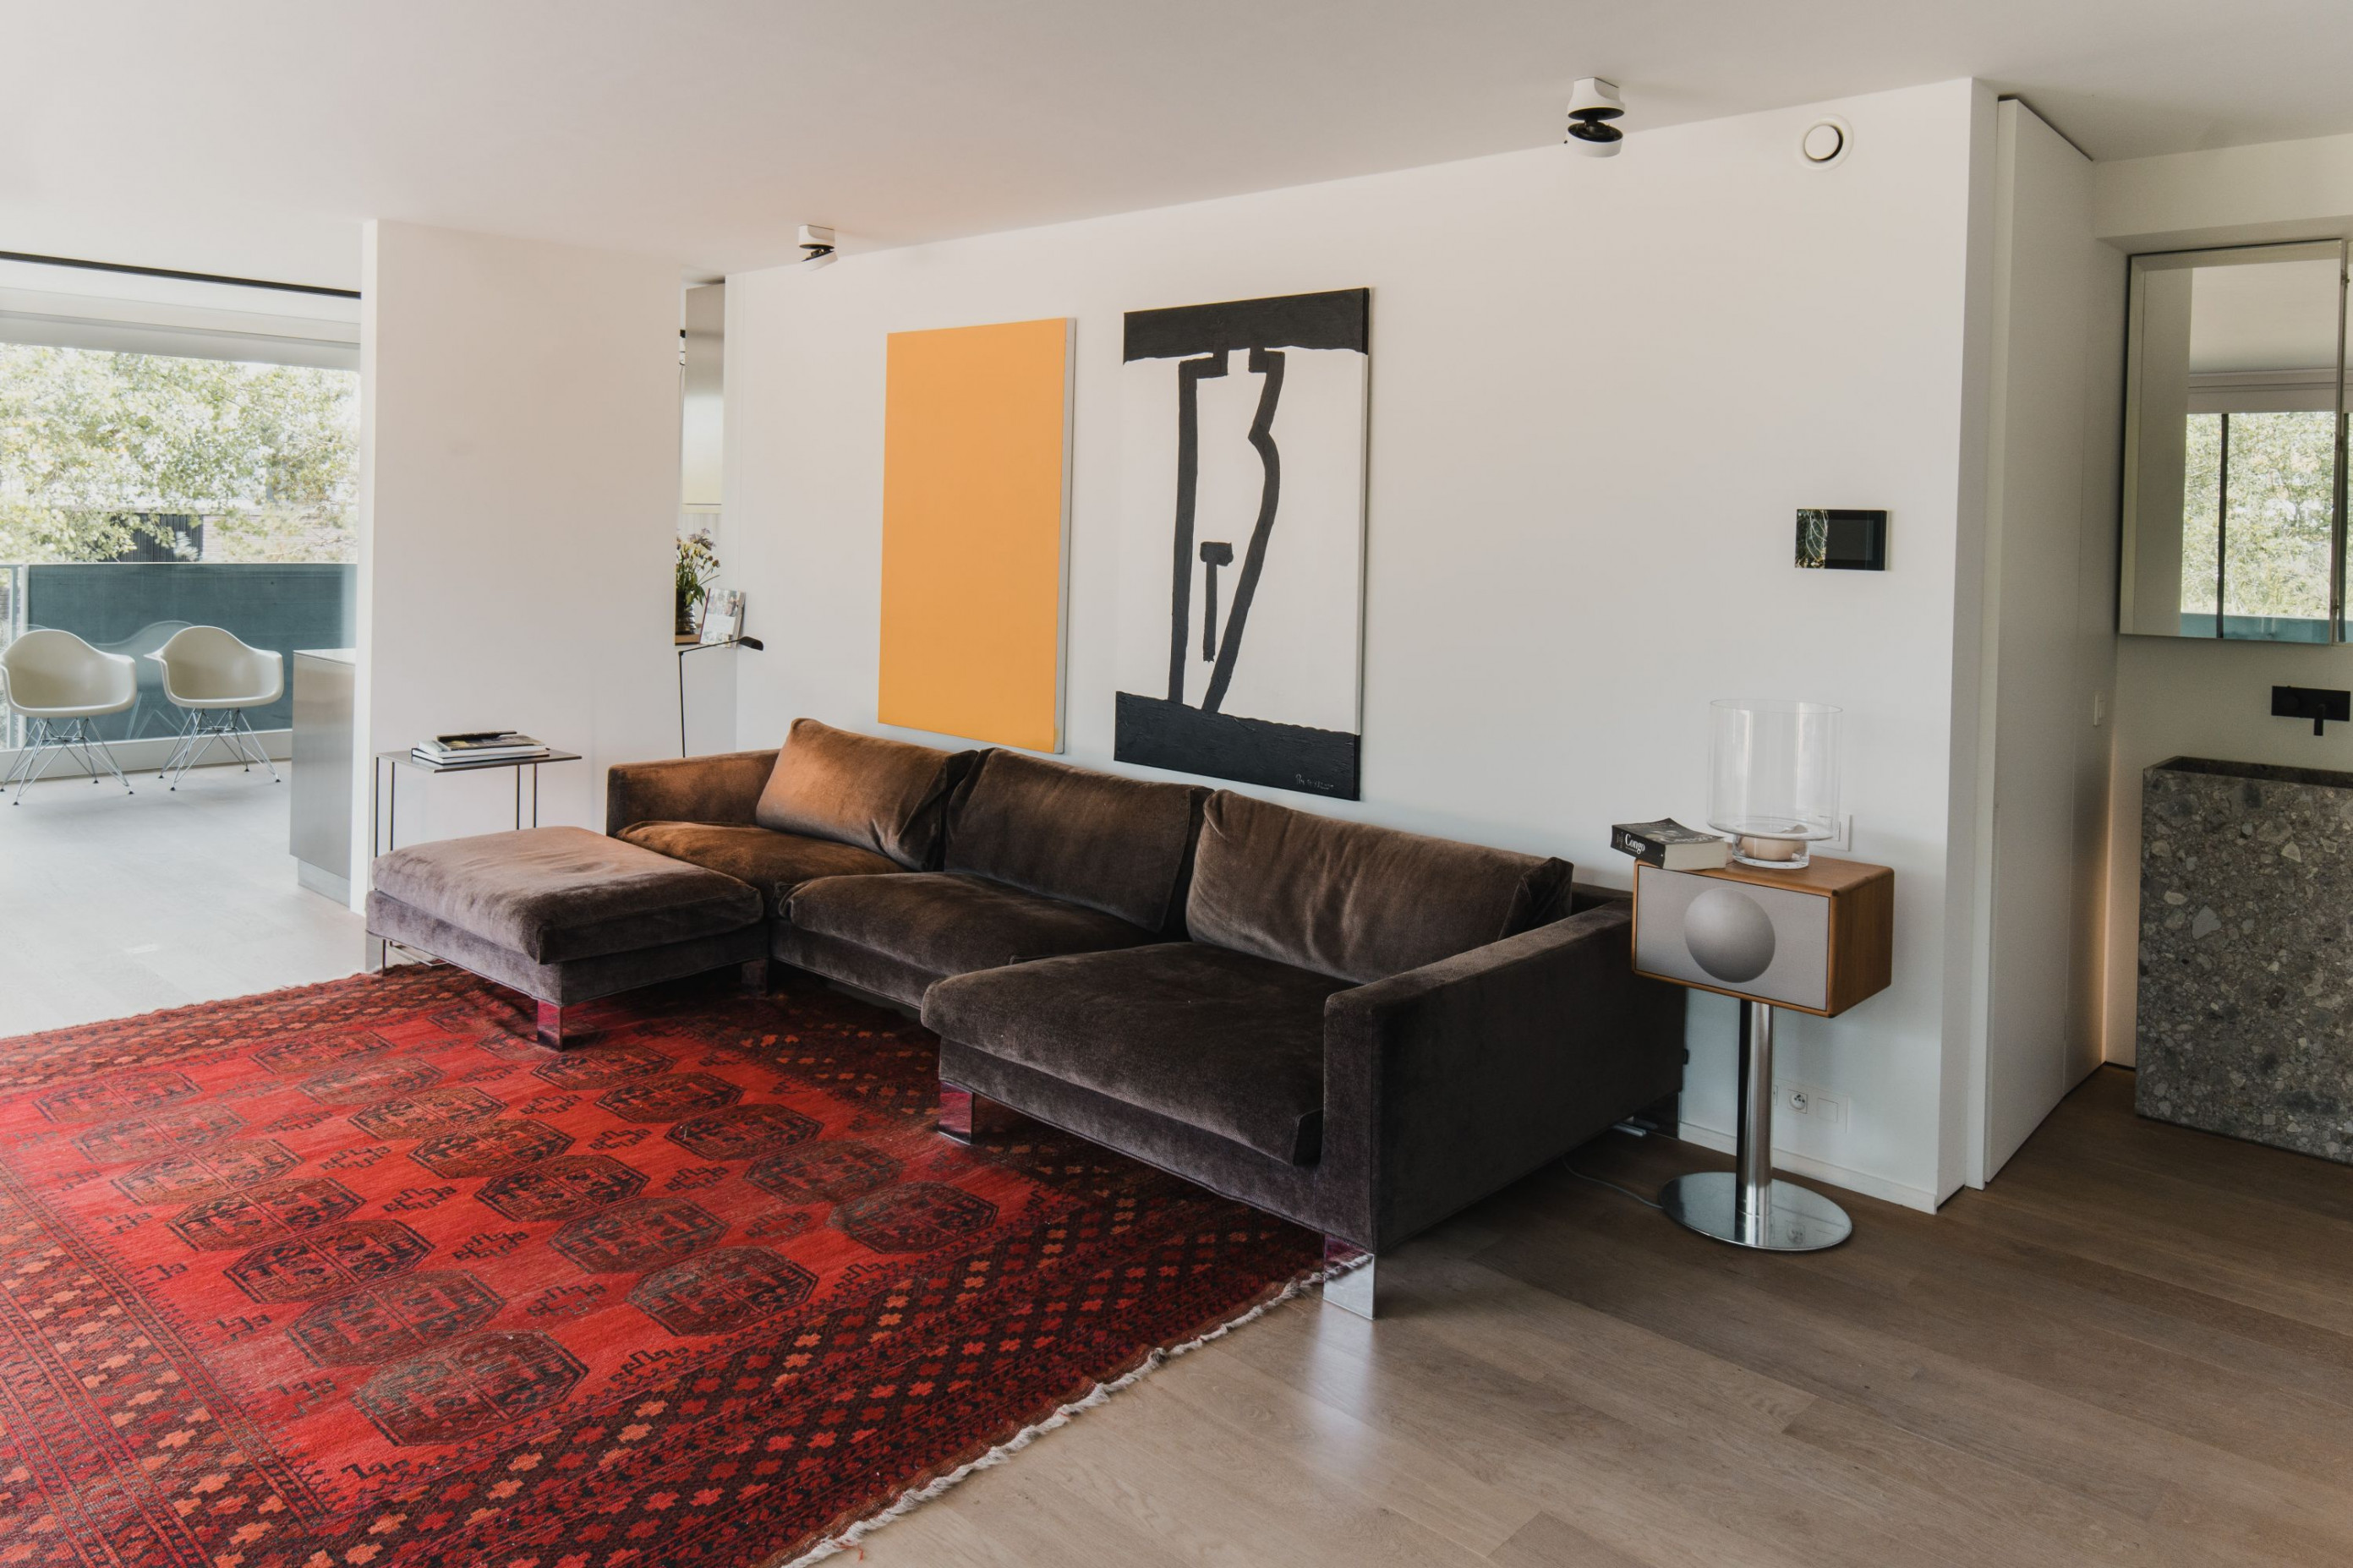 Duinappartement - Arne Jacobsen - Pic by Dayo Clinckspoor54